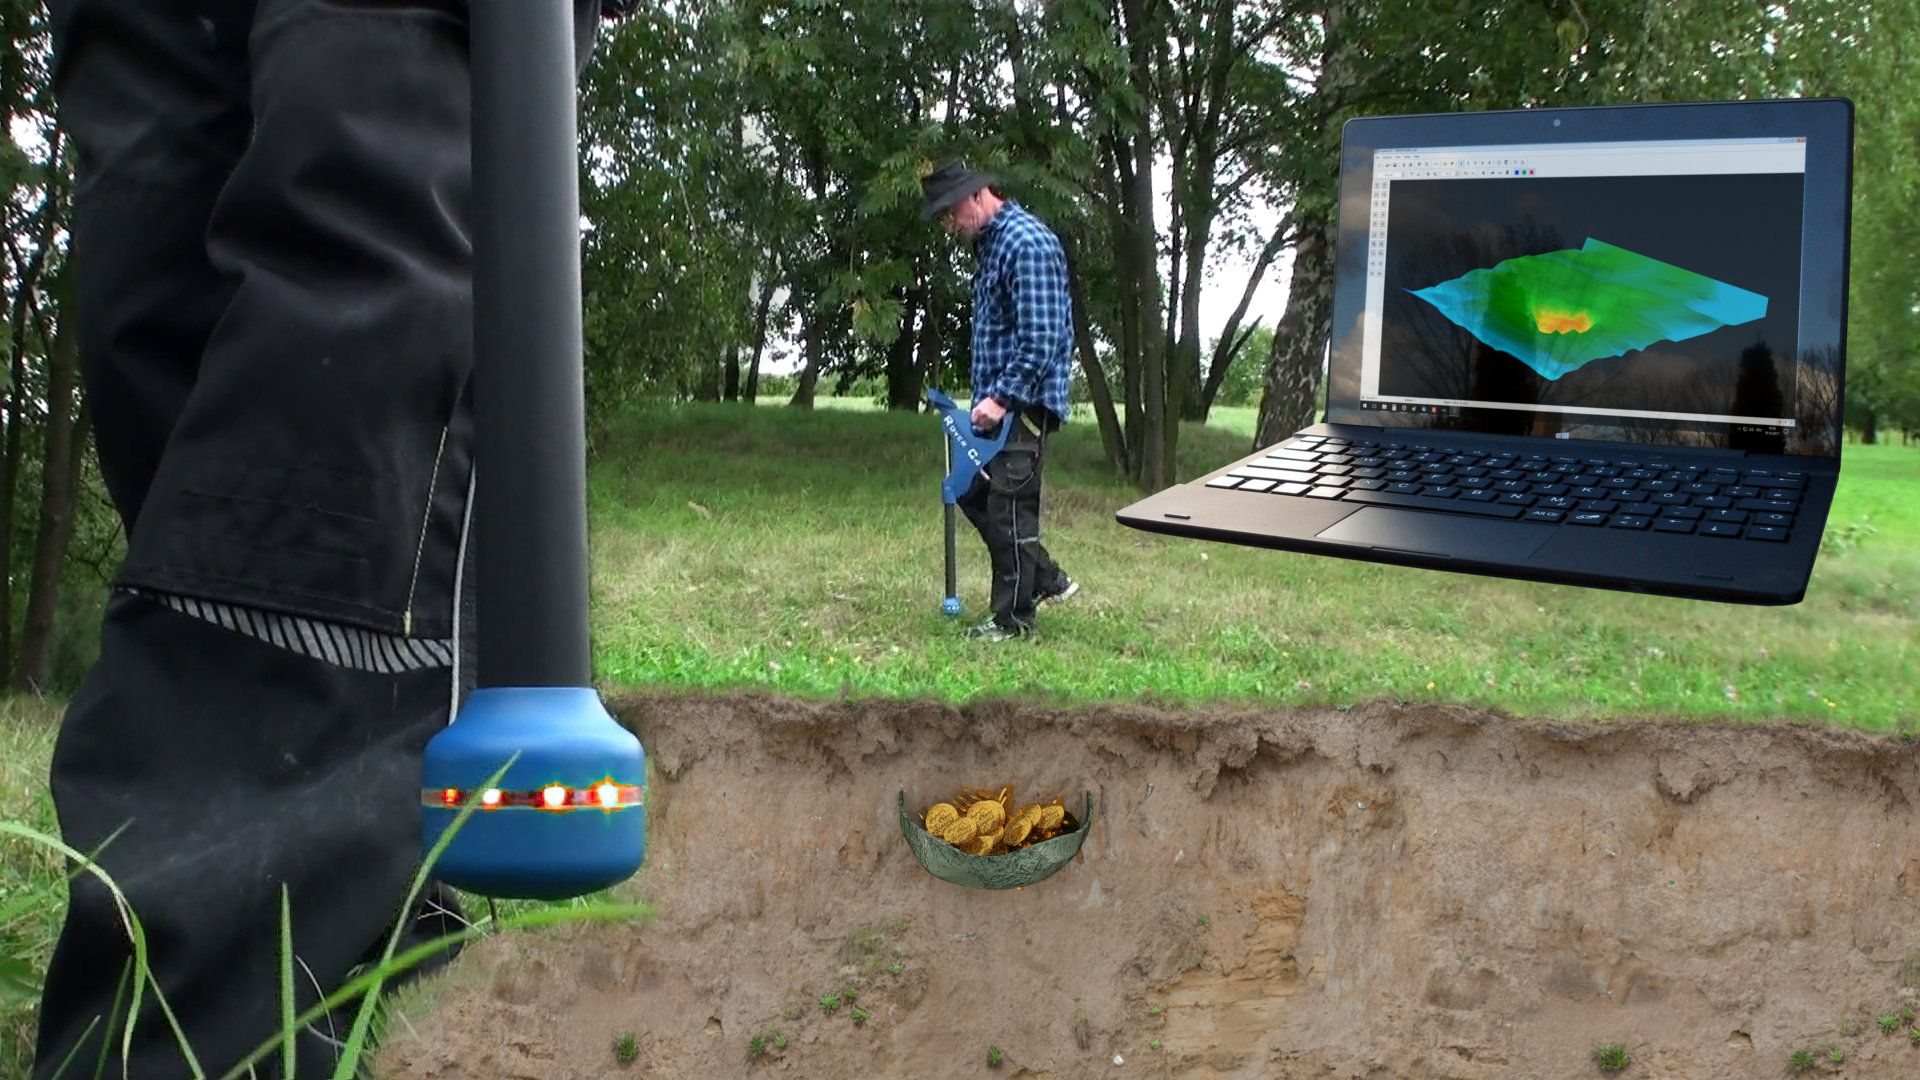 Best Metal Detector For Kids Tested & Reviewed in 2020